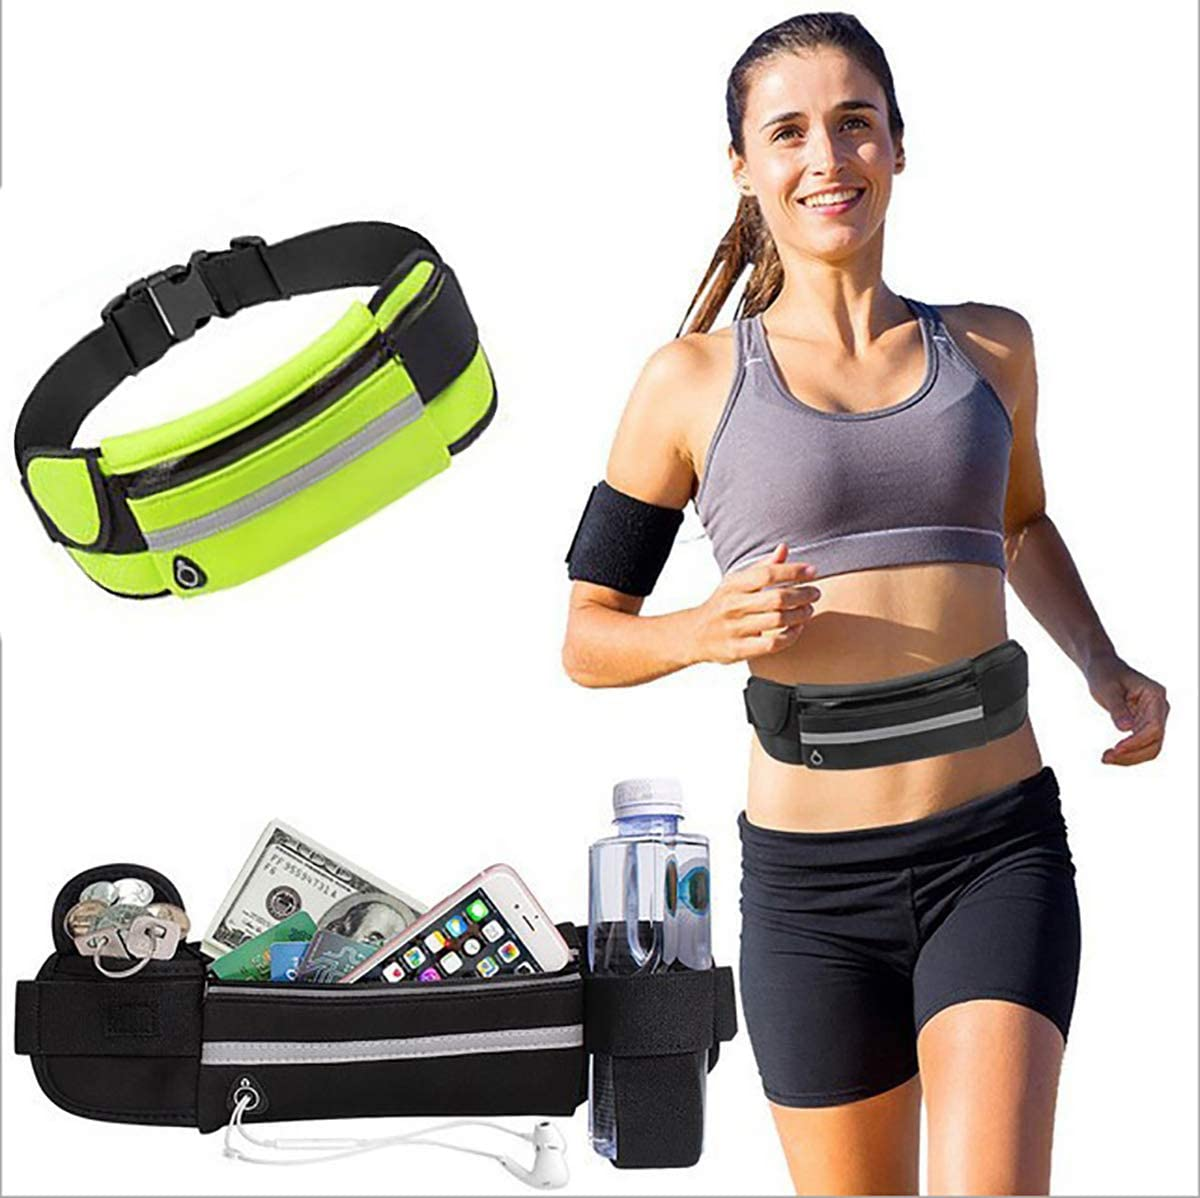 MSK BS Running Waist Pack Adjustable Elastic Strap,Exercise Belt with Water Bottle Holder for Gym Workouts,Running,Hiking,Cycling Walking,Travel /& Outdoor Activities